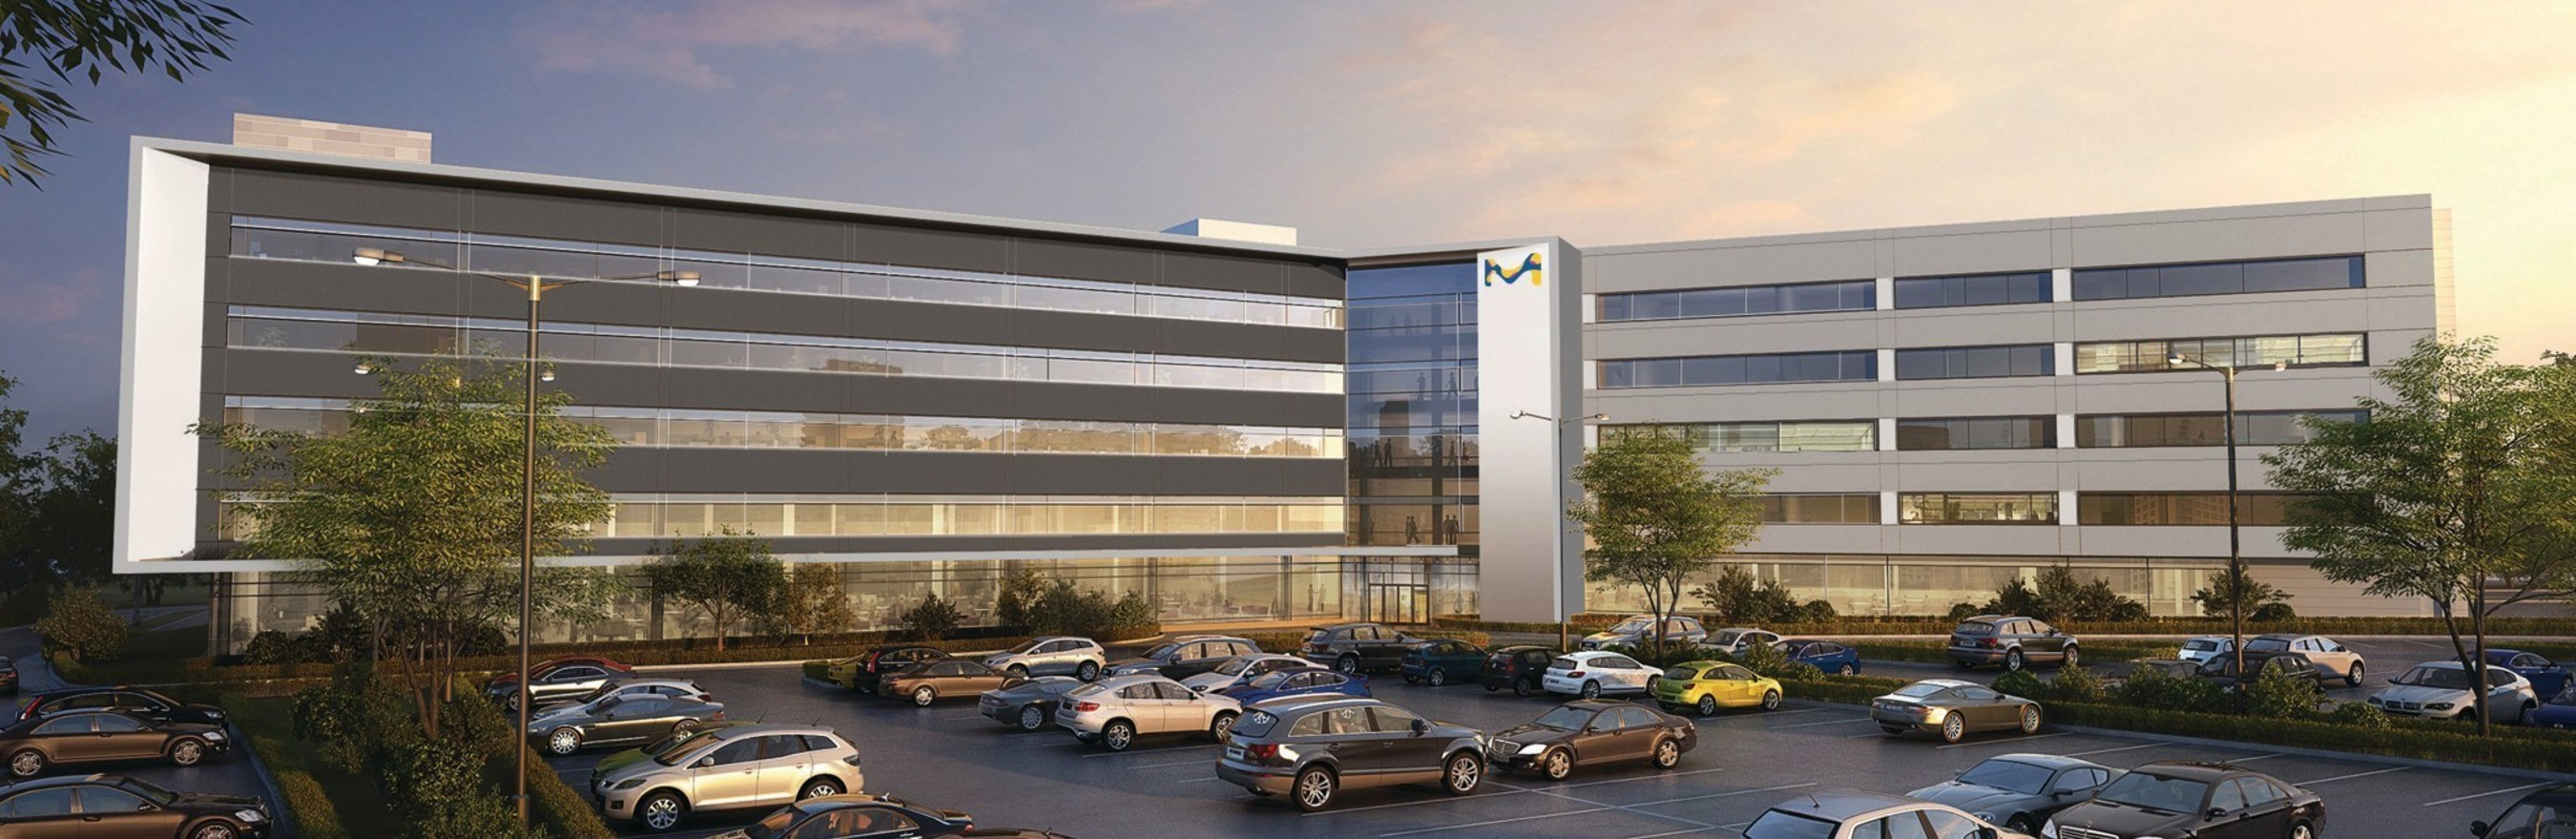 MilliporeSigma's new, $115 million  Burlington, Massachusetts campus, slated to open in 2017, will serve as a major life science hub for Merck KGaA, Darmstadt, Germany with a state-of-the art lab for customer collaboration